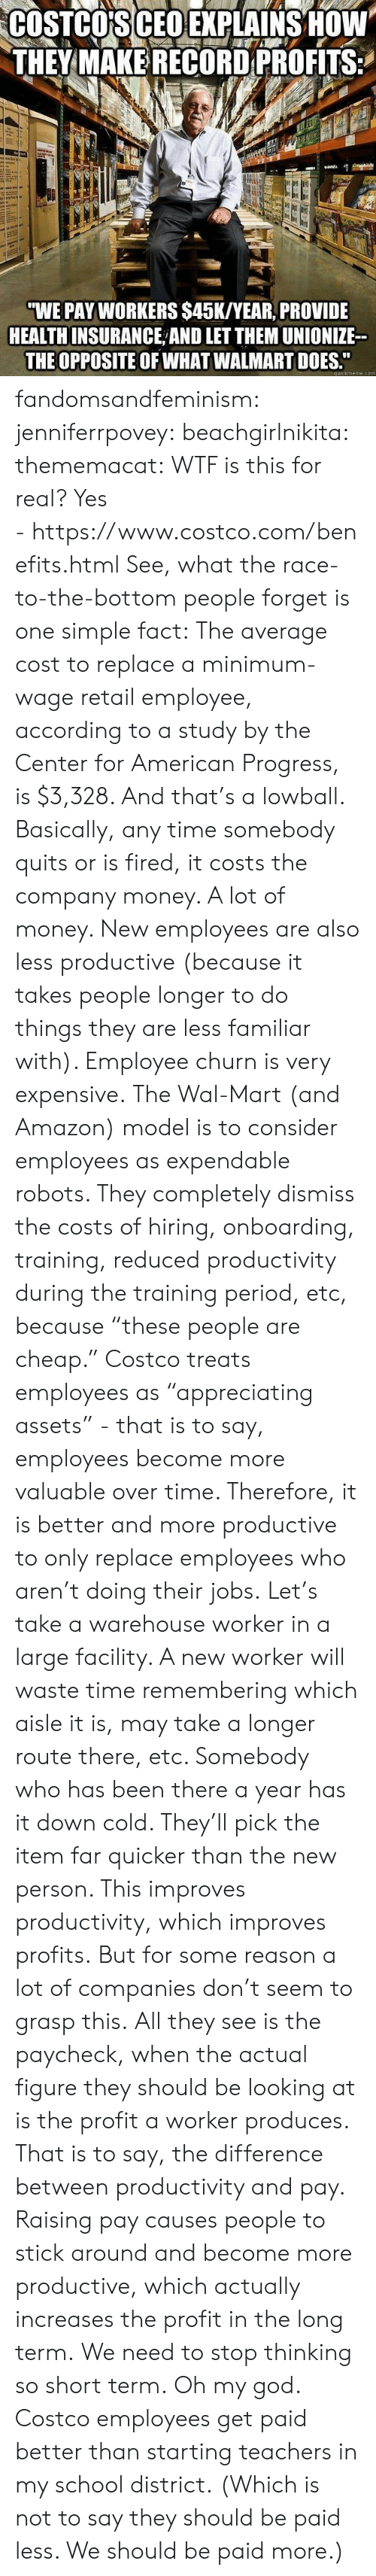 "productivity: COSTCO'S CEO EXPLAINS HOW  THEY MAKE RECORD PROFITS  ""WE PAY WORKERS $45K/YEAR, PROVIDE  HEALTH INSURANCE AND LET THEM UNIONIZE  THE OPPOSITE OF WHAT WALMART DOES.""  quickmeme.com fandomsandfeminism:  jenniferrpovey:  beachgirlnikita:  thememacat: WTF is this for real? Yes - https://www.costco.com/benefits.html  See, what the race-to-the-bottom people forget is one simple fact: The average cost to replace a minimum-wage retail employee, according to a study by the Center for American Progress, is $3,328. And that's a lowball. Basically, any time somebody quits or is fired, it costs the company money. A lot of money. New employees are also less productive (because it takes people longer to do things they are less familiar with). Employee churn is very expensive. The Wal-Mart (and Amazon) model is to consider employees as expendable robots. They completely dismiss the costs of hiring, onboarding, training, reduced productivity during the training period, etc, because ""these people are cheap."" Costco treats employees as ""appreciating assets"" - that is to say, employees become more valuable over time. Therefore, it is better and more productive to only replace employees who aren't doing their jobs. Let's take a warehouse worker in a large facility. A new worker will waste time remembering which aisle it is, may take a longer route there, etc. Somebody who has been there a year has it down cold. They'll pick the item far quicker than the new person. This improves productivity, which improves profits. But for some reason a lot of companies don't seem to grasp this. All they see is the paycheck, when the actual figure they should be looking at is the profit a worker produces. That is to say, the difference between productivity and pay. Raising pay causes people to stick around and become more productive, which actually increases the profit in the long term. We need to stop thinking so short term.   Oh my god. Costco employees get paid better than starting teachers in my school district.  (Which is not to say they should be paid less. We should be paid more.)"